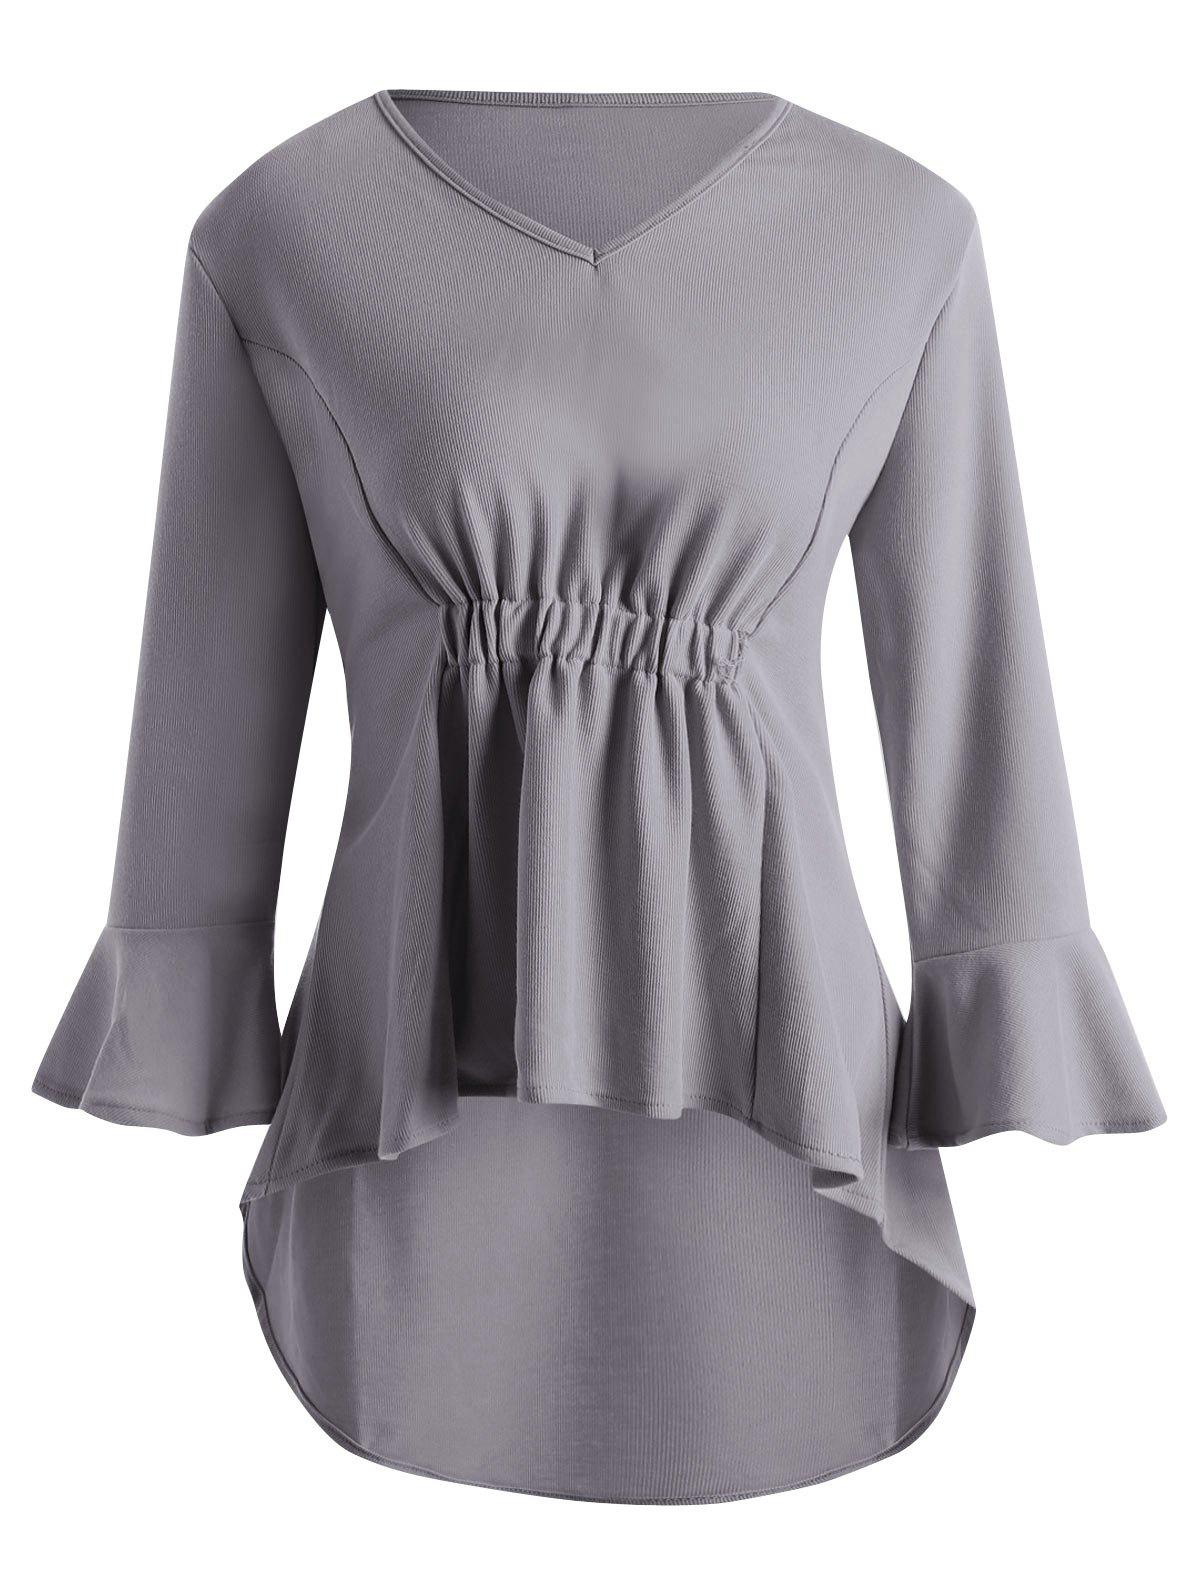 84ace238f7e6f4 50% OFF] Bell Sleeve Plus Size High Low Peplum Top | Rosegal